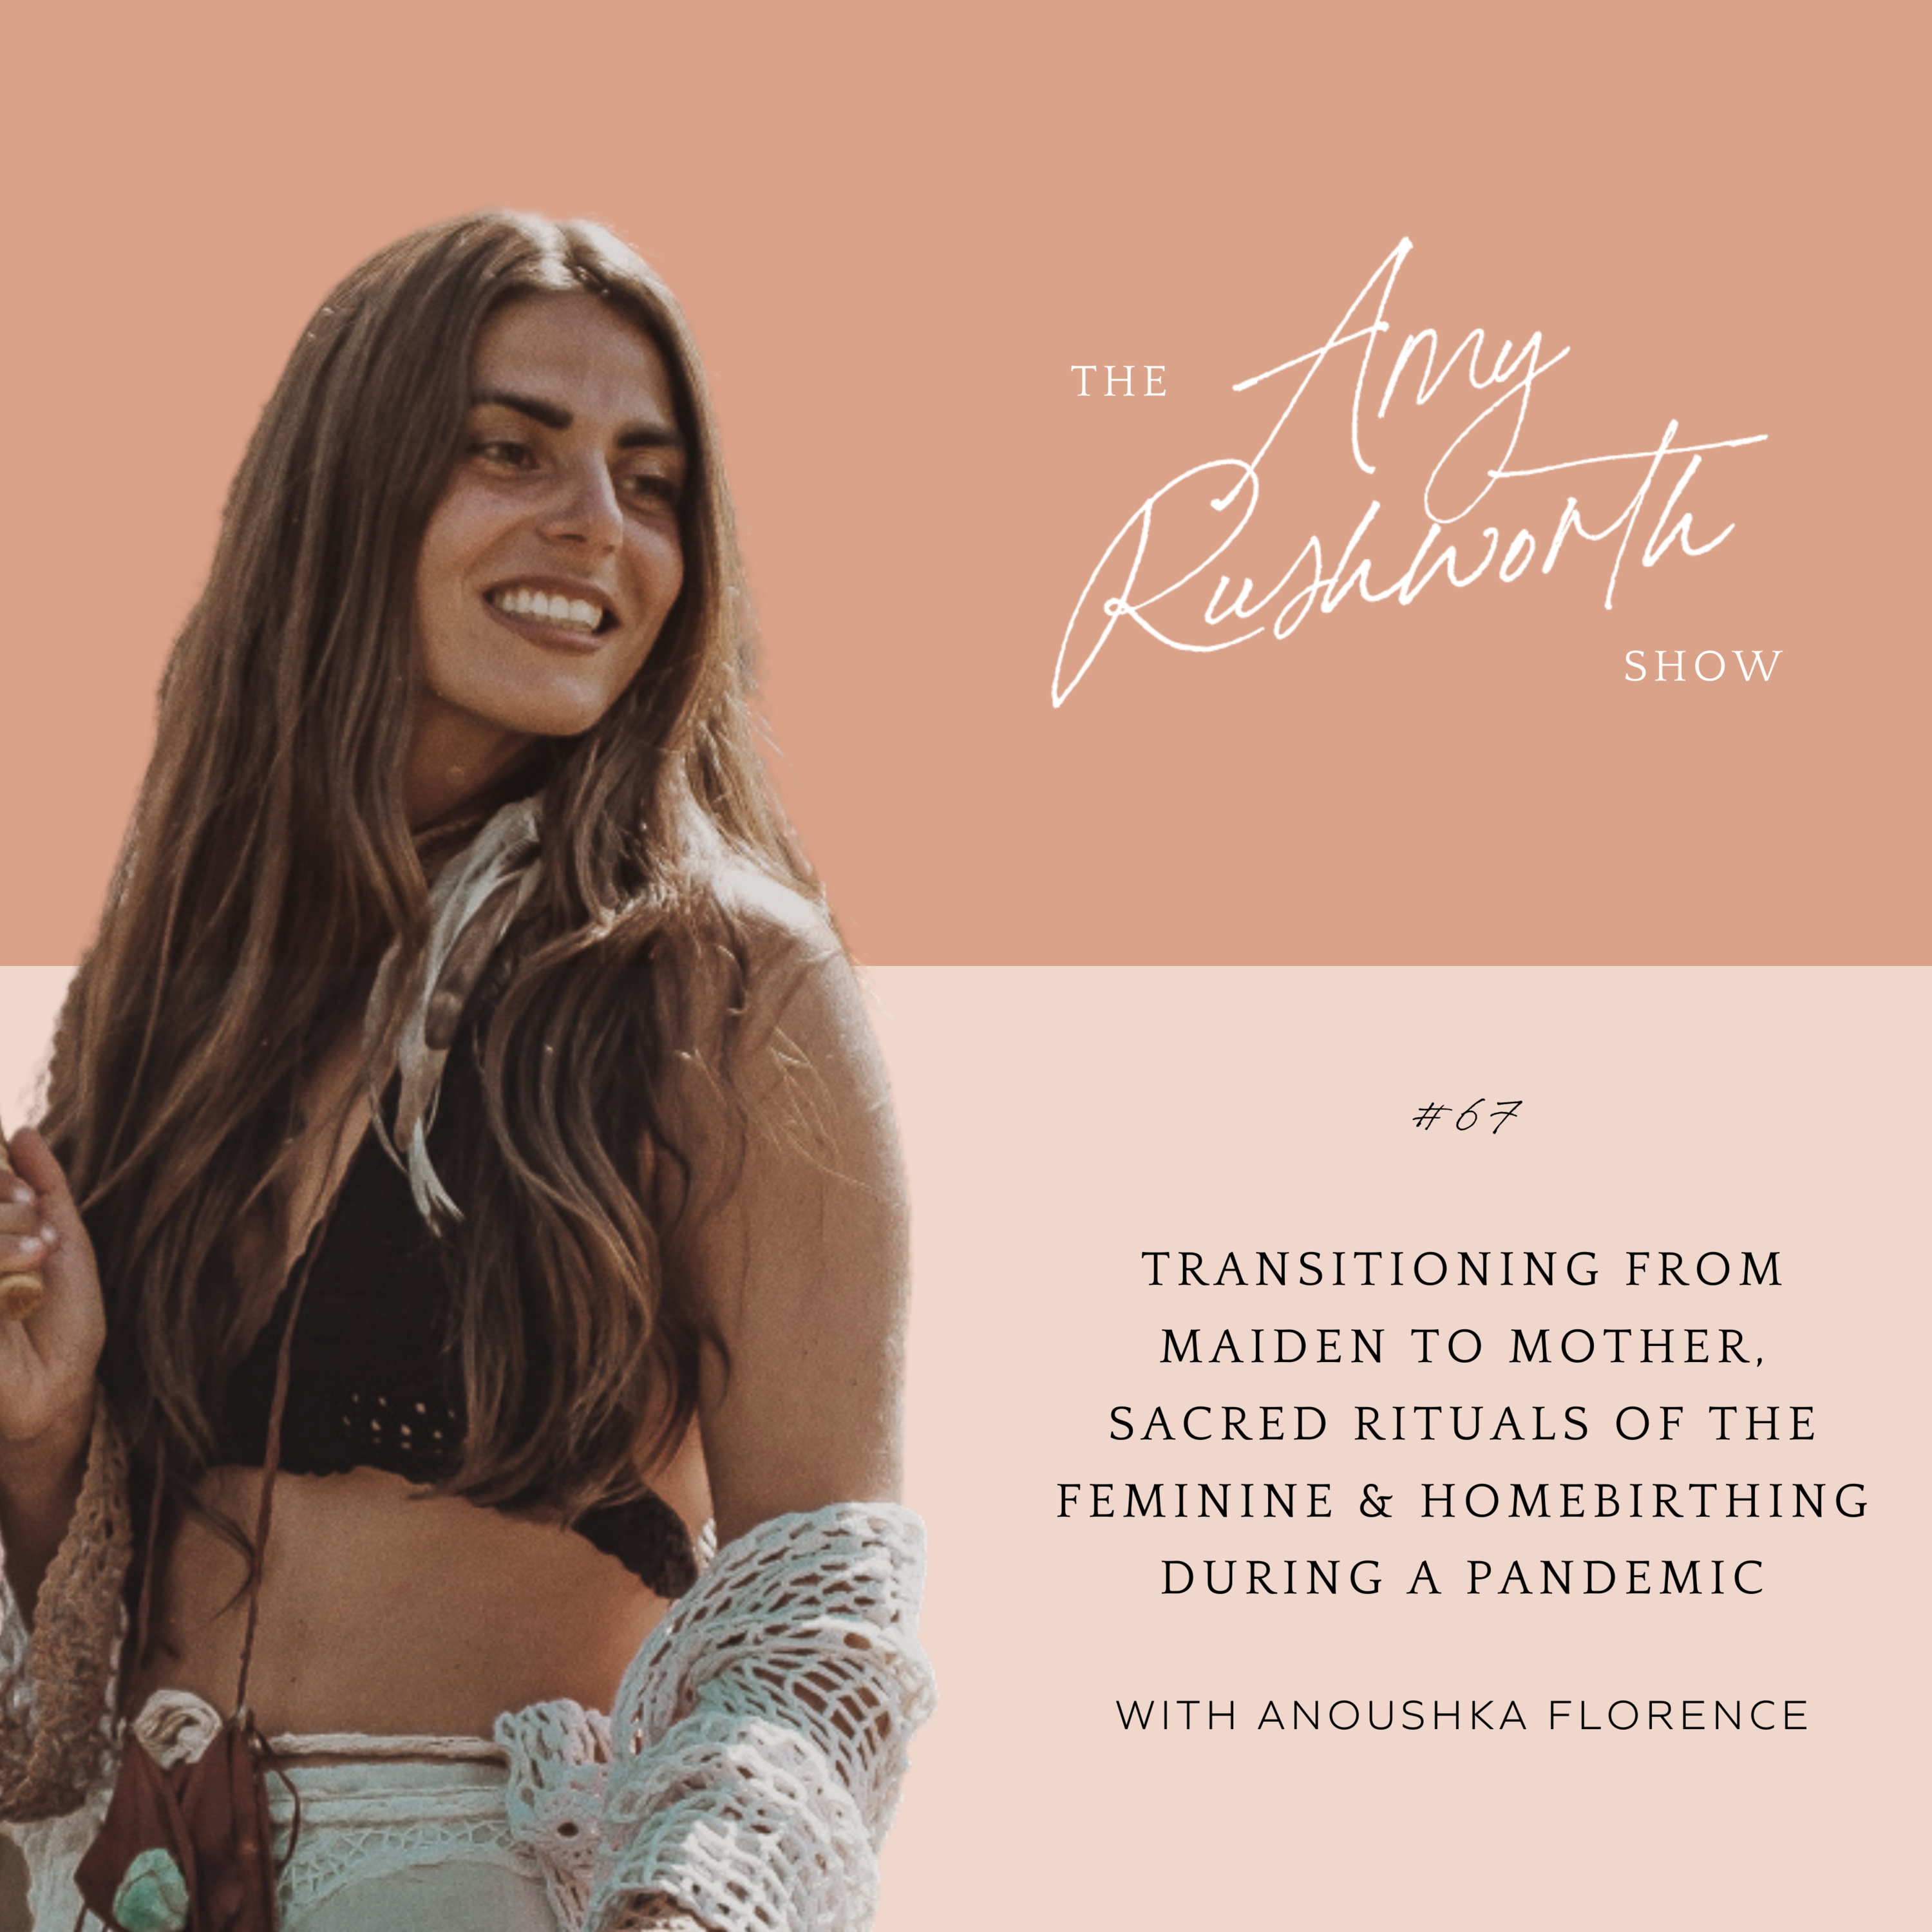 67 - Transitioning from Maiden to Mother, Sacred Rituals of the Feminine & Homebirthing During A Pandemic with Anoushka Florence